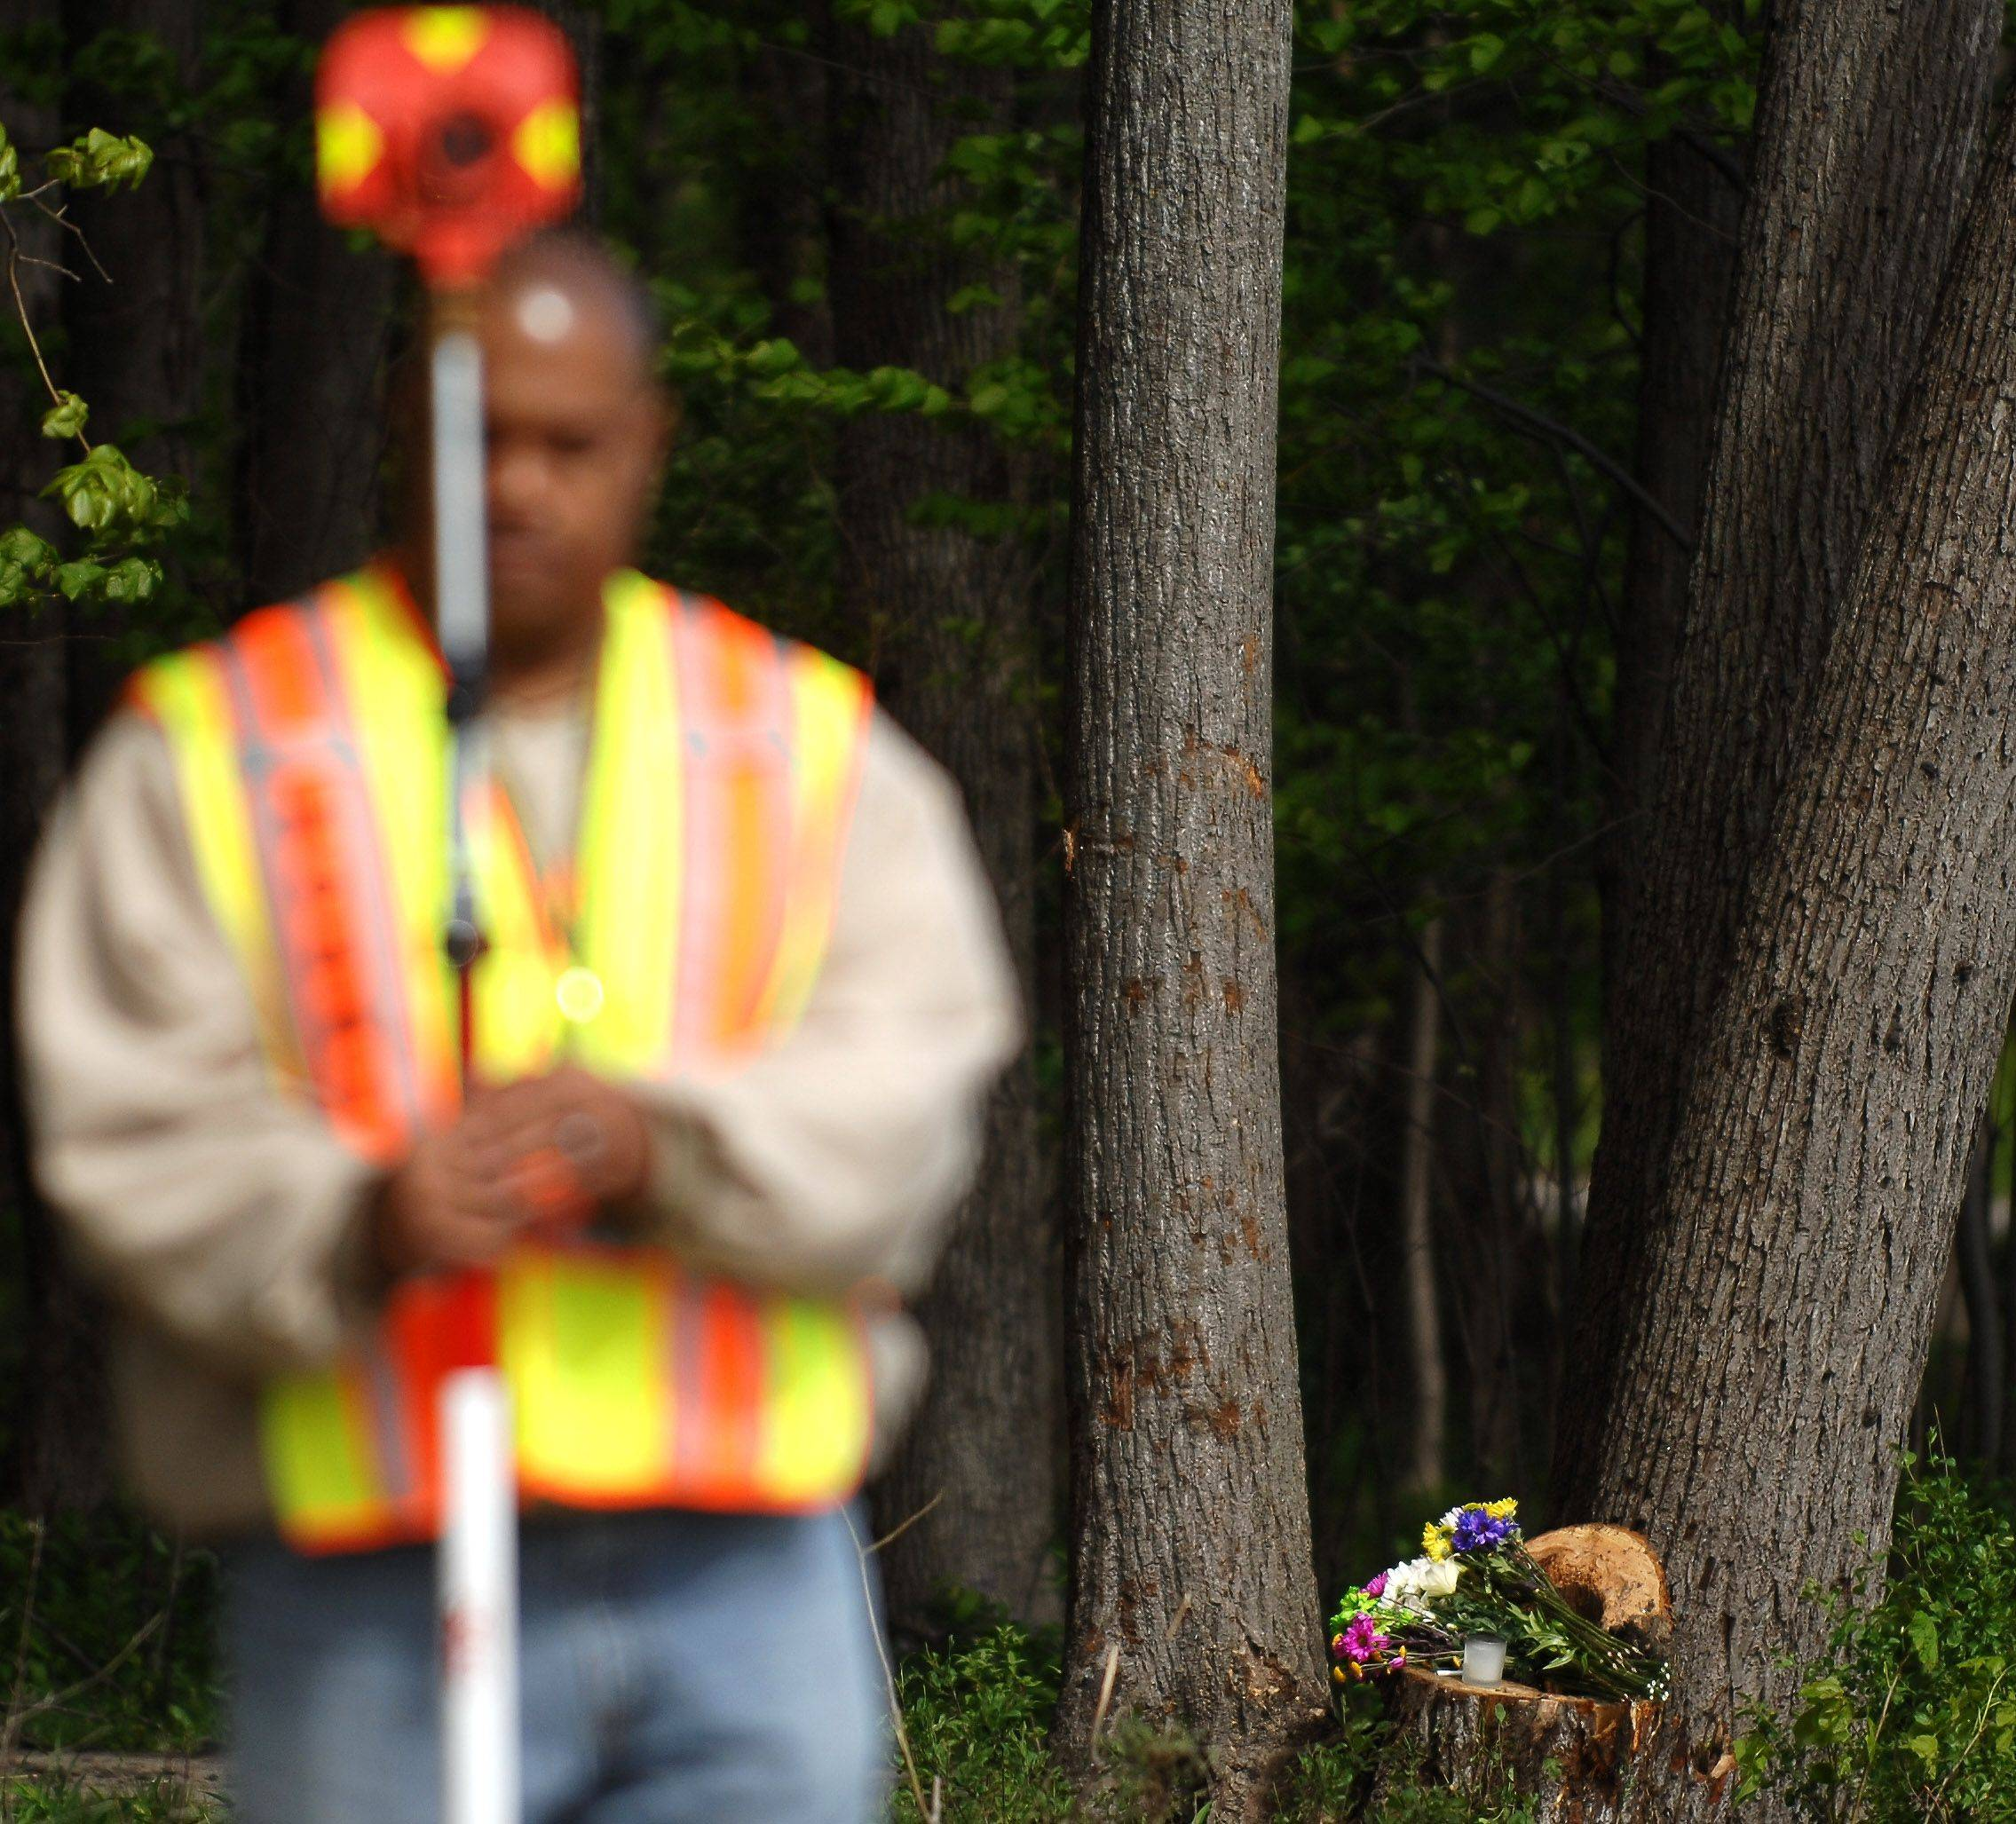 Flowers mark the site of a fatal accident on Green Road in Elburn as Kane County Sheriff's Department Sergeant Craig Campbell works to reconstruct the scene Tuesday. Batavia High School senior Lynlee Gilbert, 17, was killed in the Monday night crash and passenger Sarah Ginter, 18, is in critical condition at Delnor Hospital.